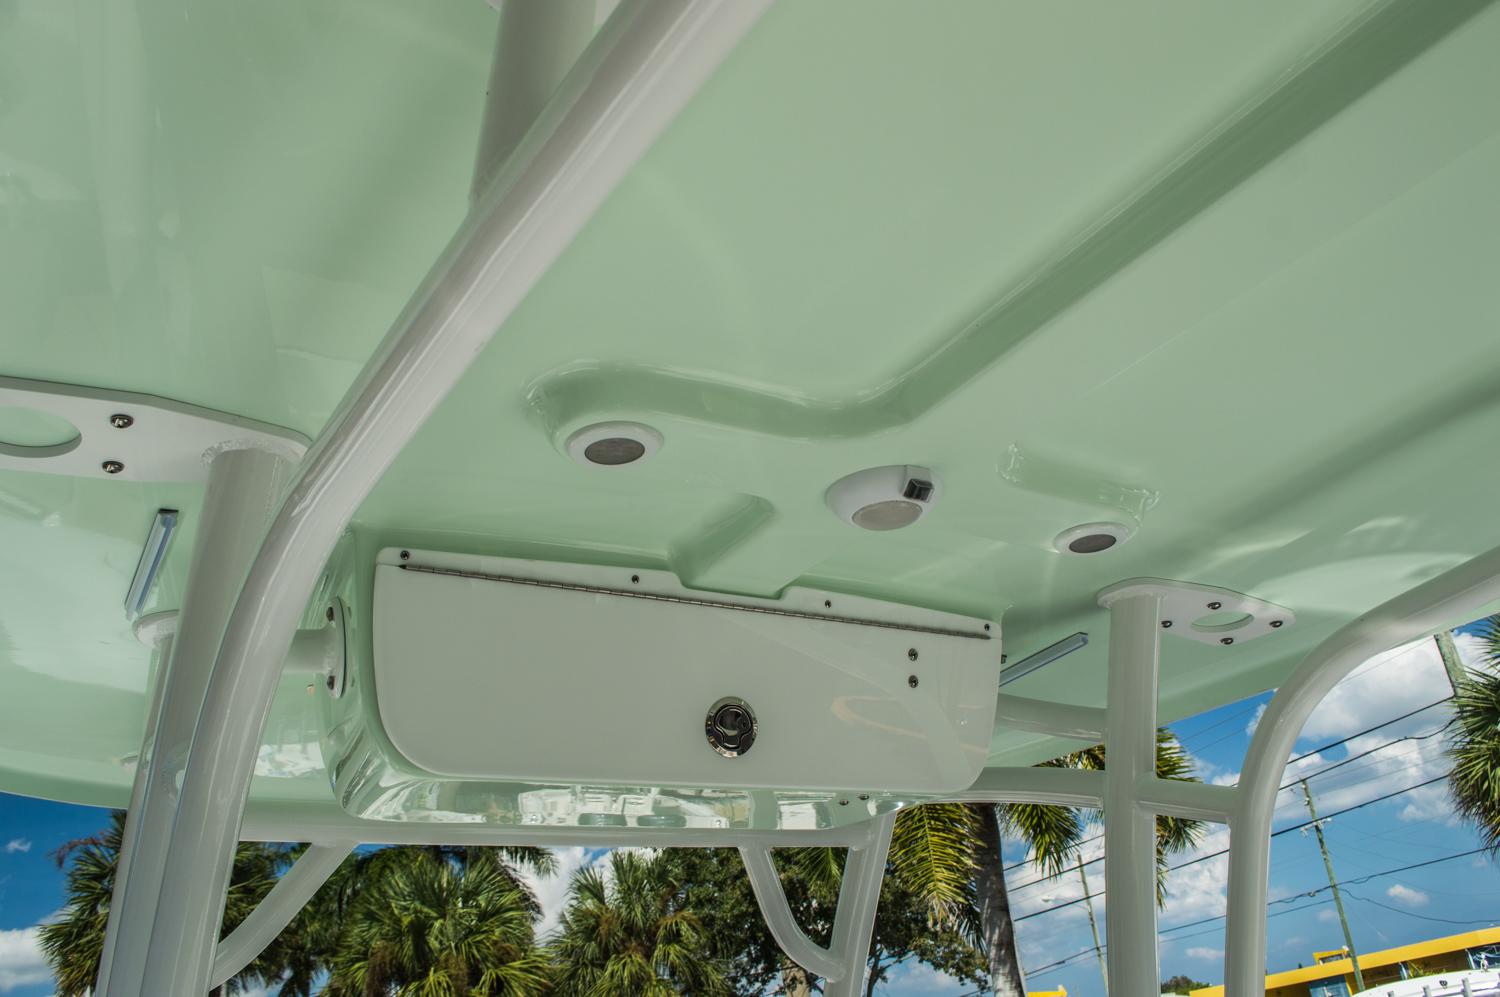 Thumbnail 38 for New 2016 Sportsman Heritage 251 Center Console boat for sale in Miami, FL